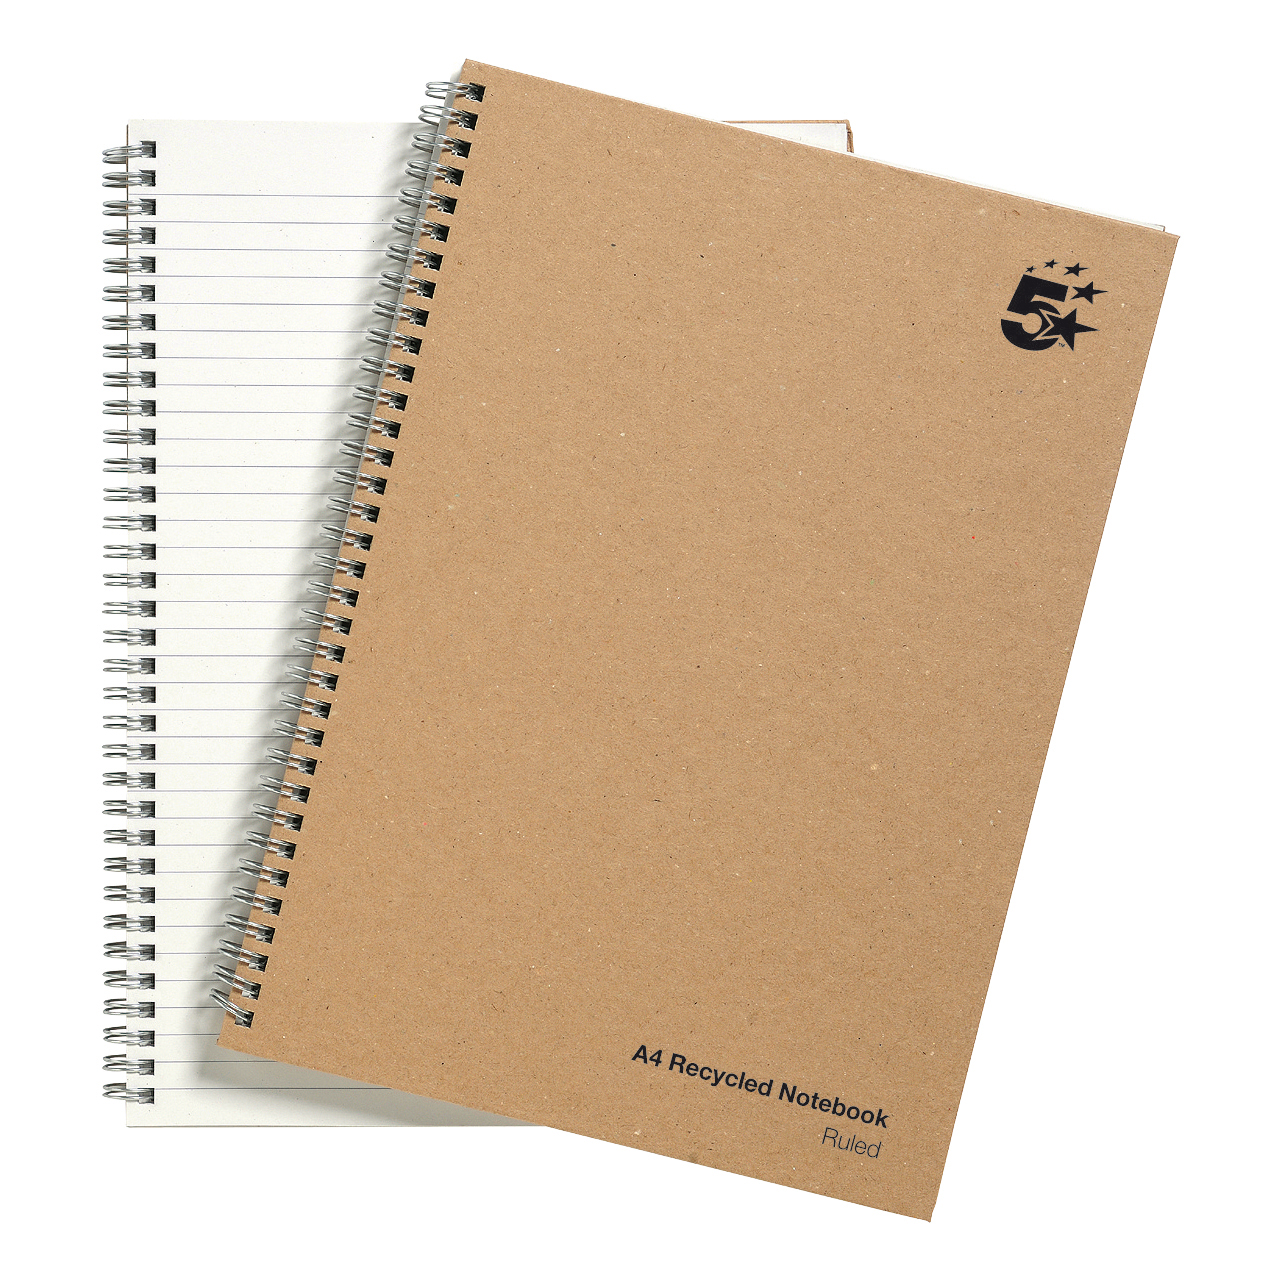 Image for 5 Star Eco Notebook Wirebound 80gsm Ruled Recycled 160pp A4 Buff [Pack 5]